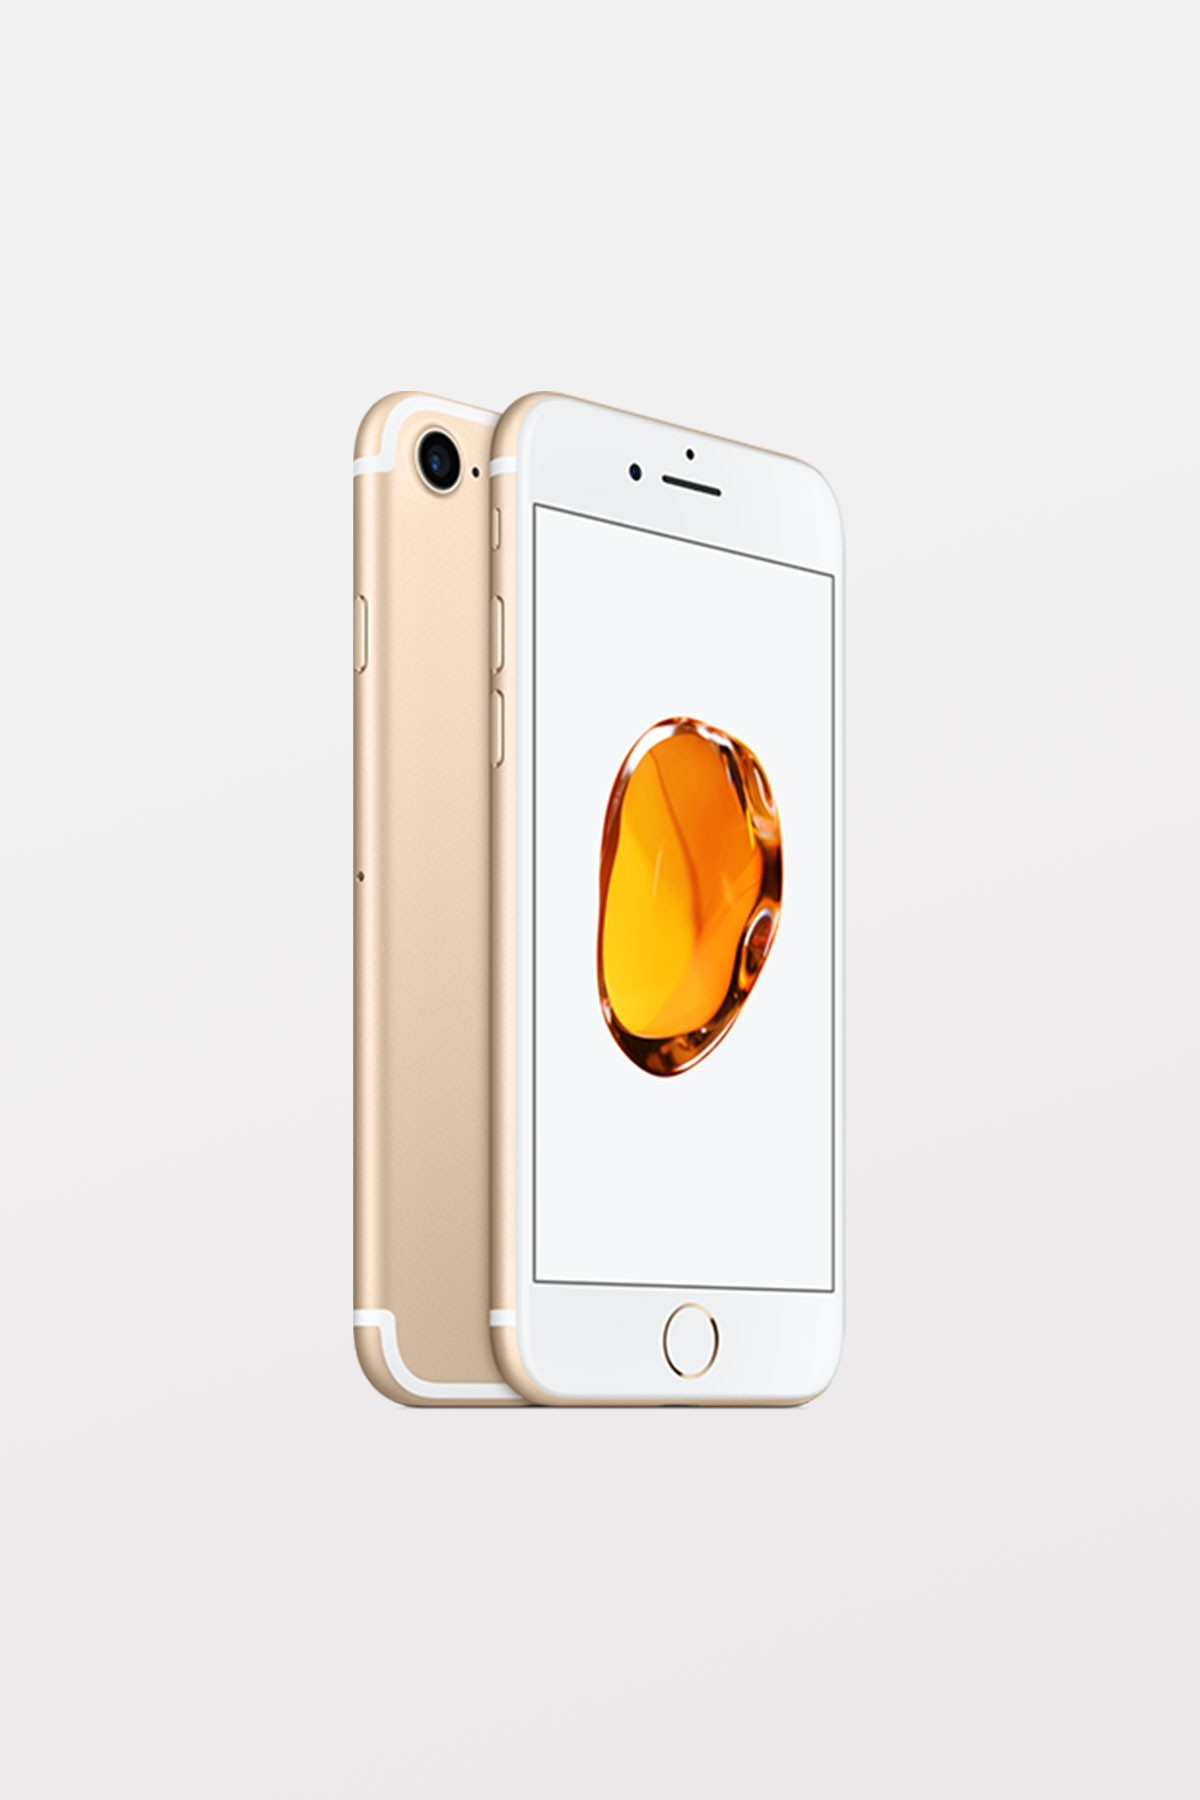 Apple iPhone 7 128GB - Gold - Refurbished